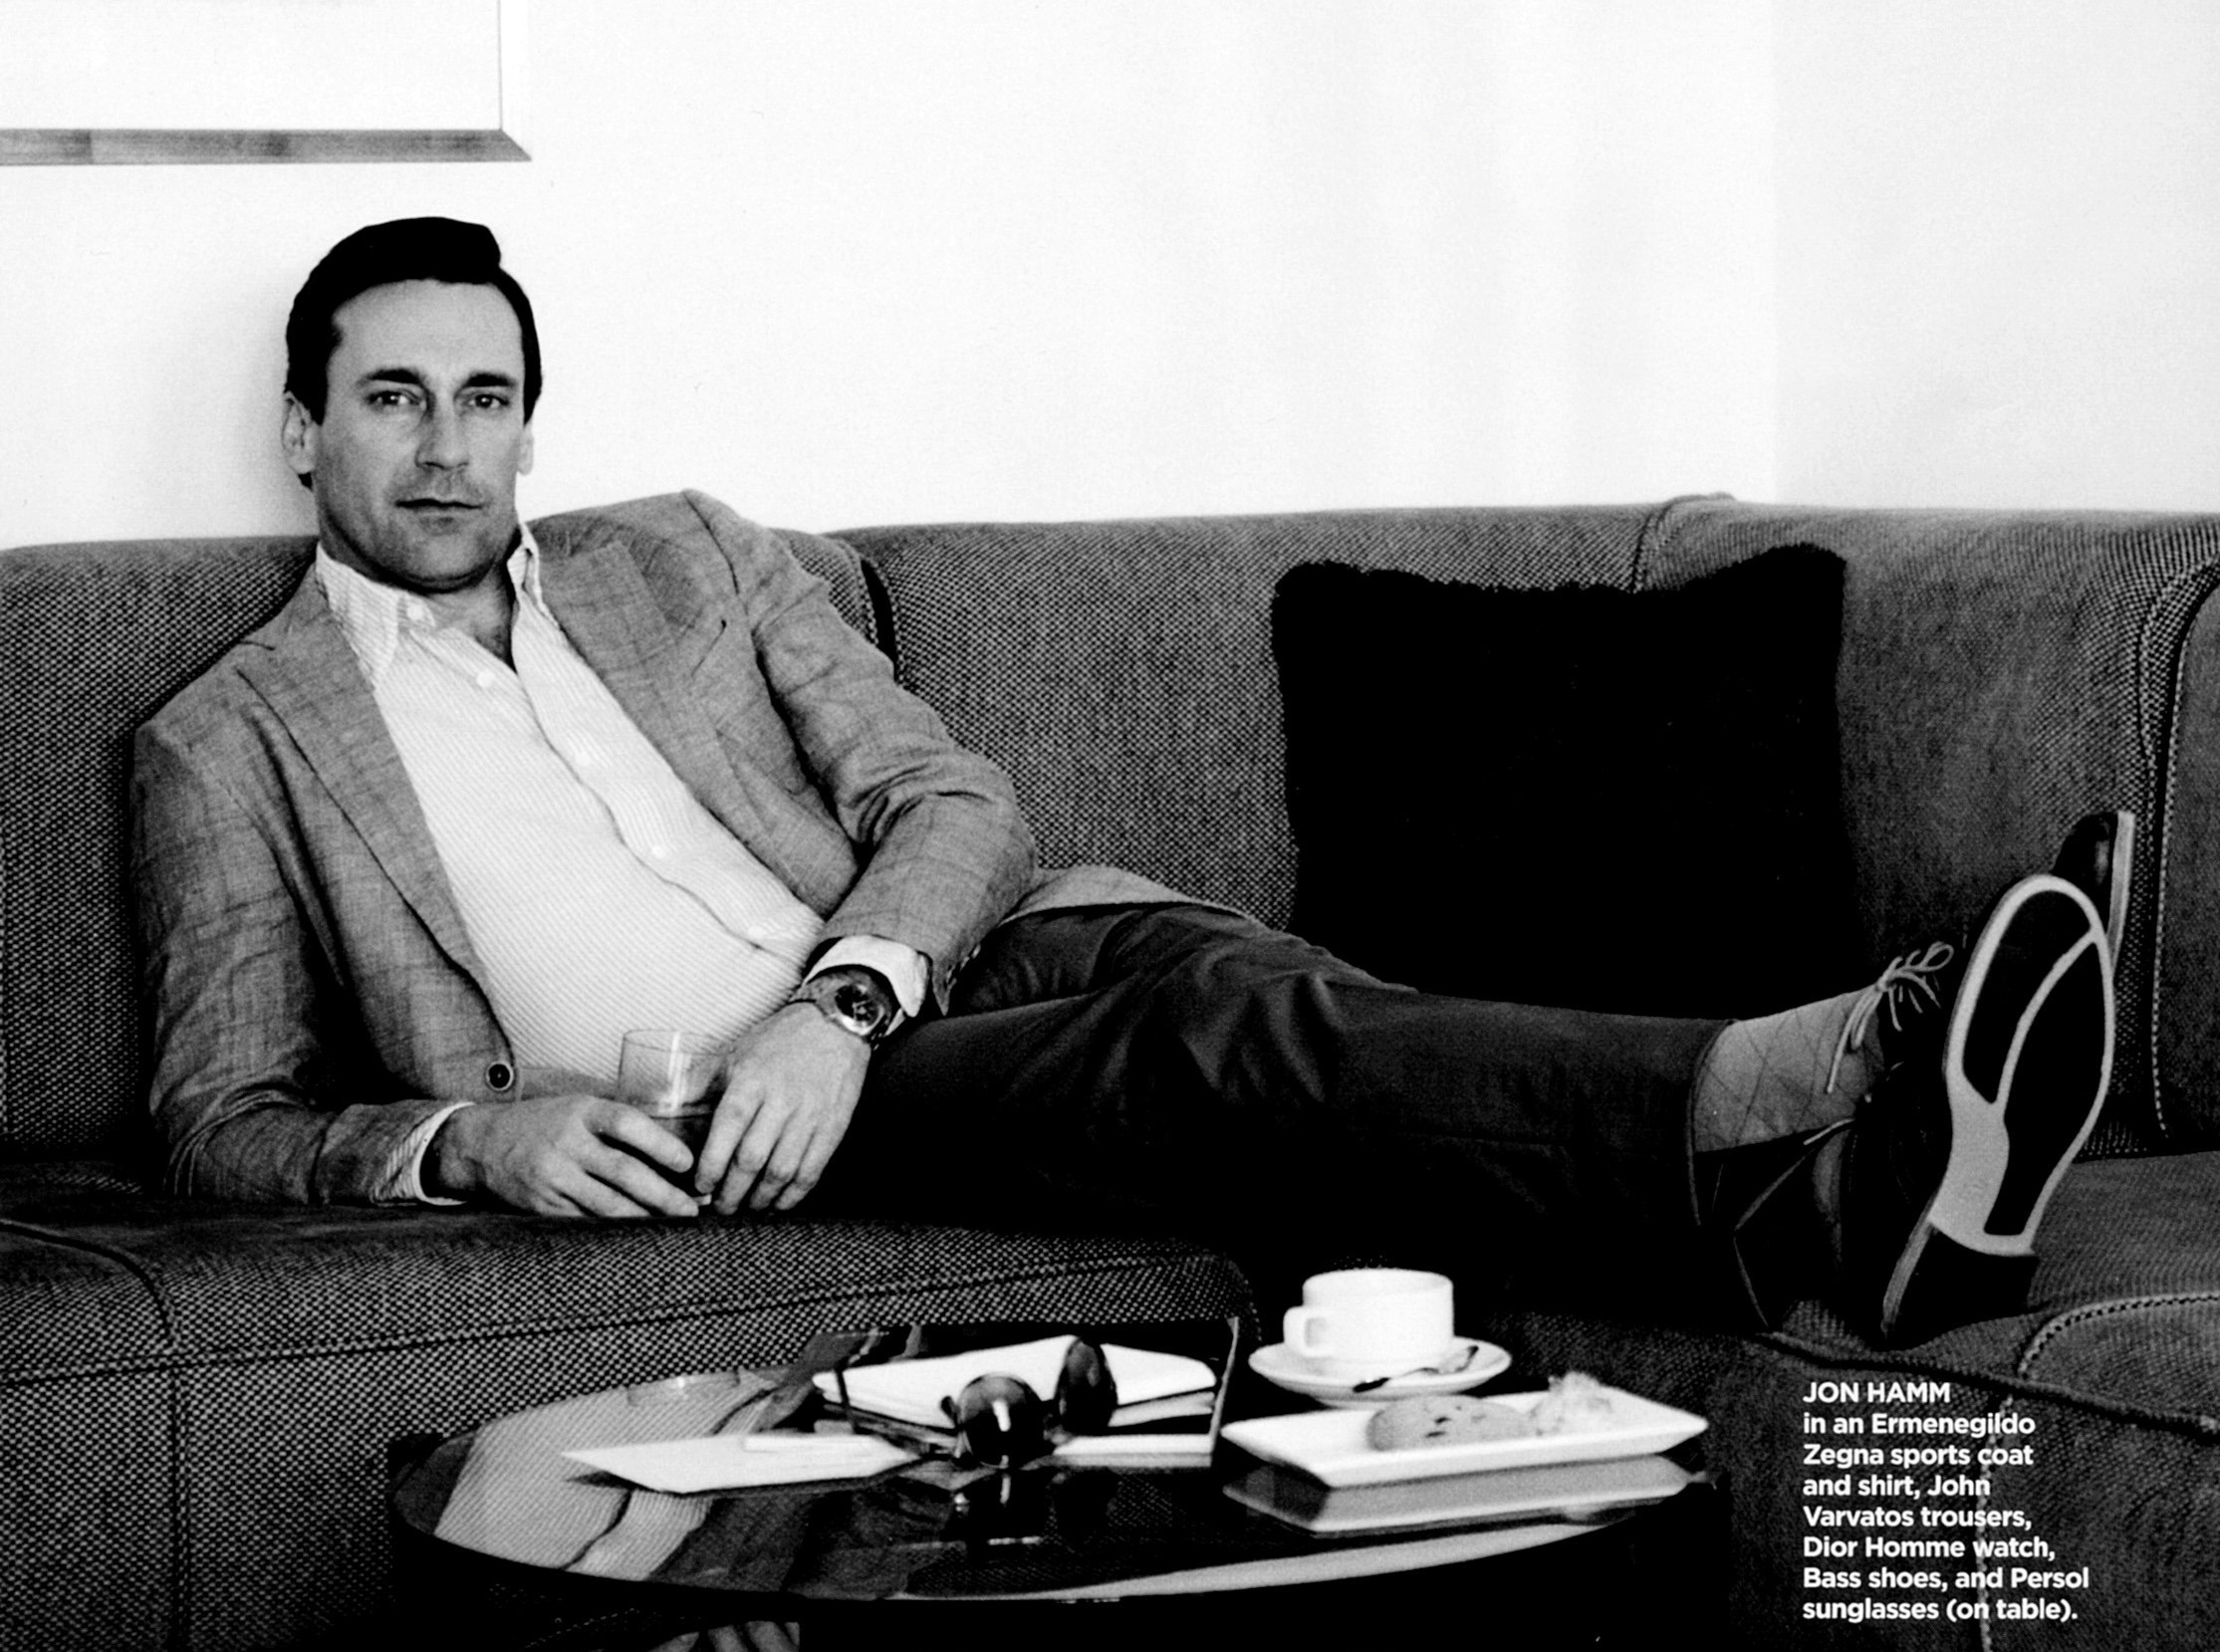 Res: 2229x1659, Jon Hamm High Definition Wallpapers